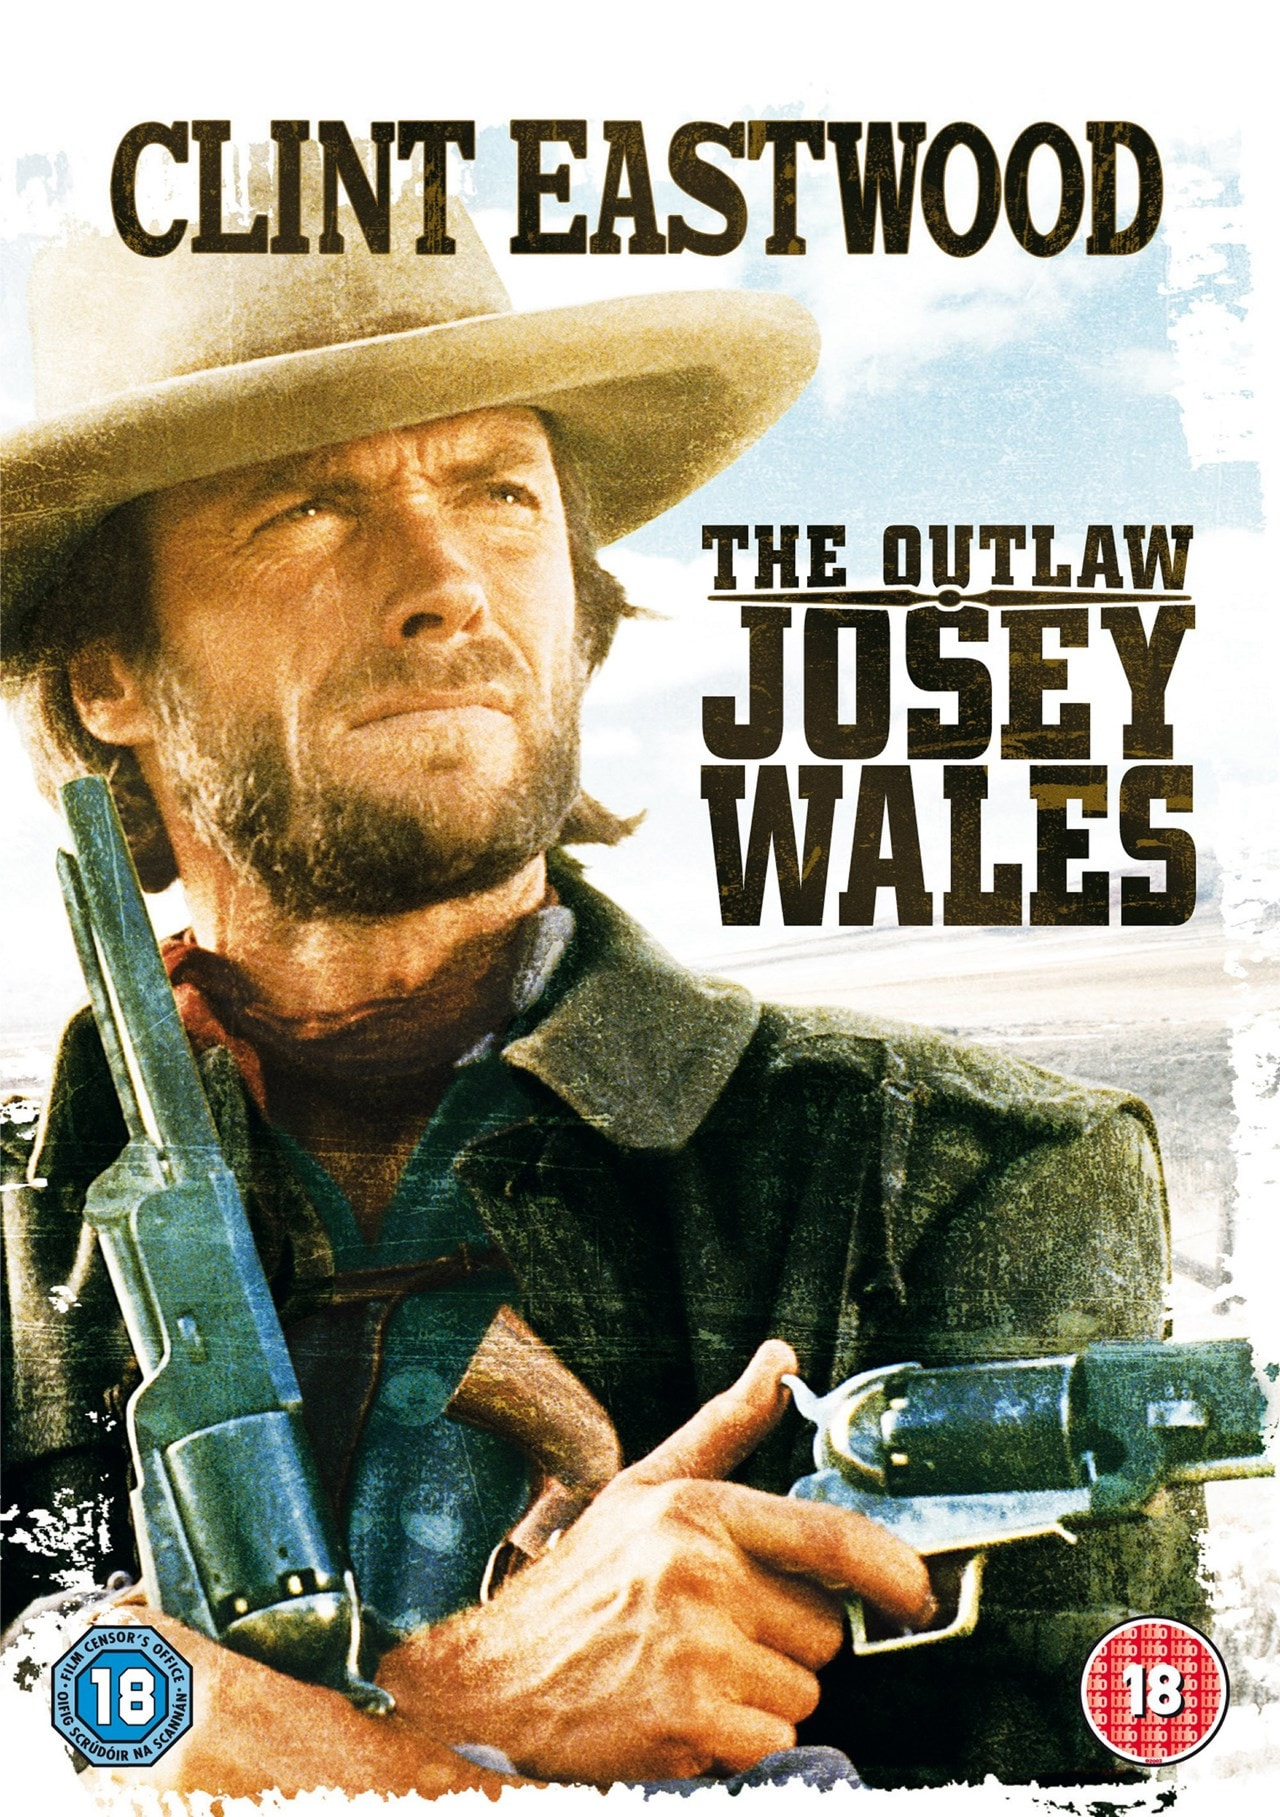 The Outlaw Josey Wales - 1